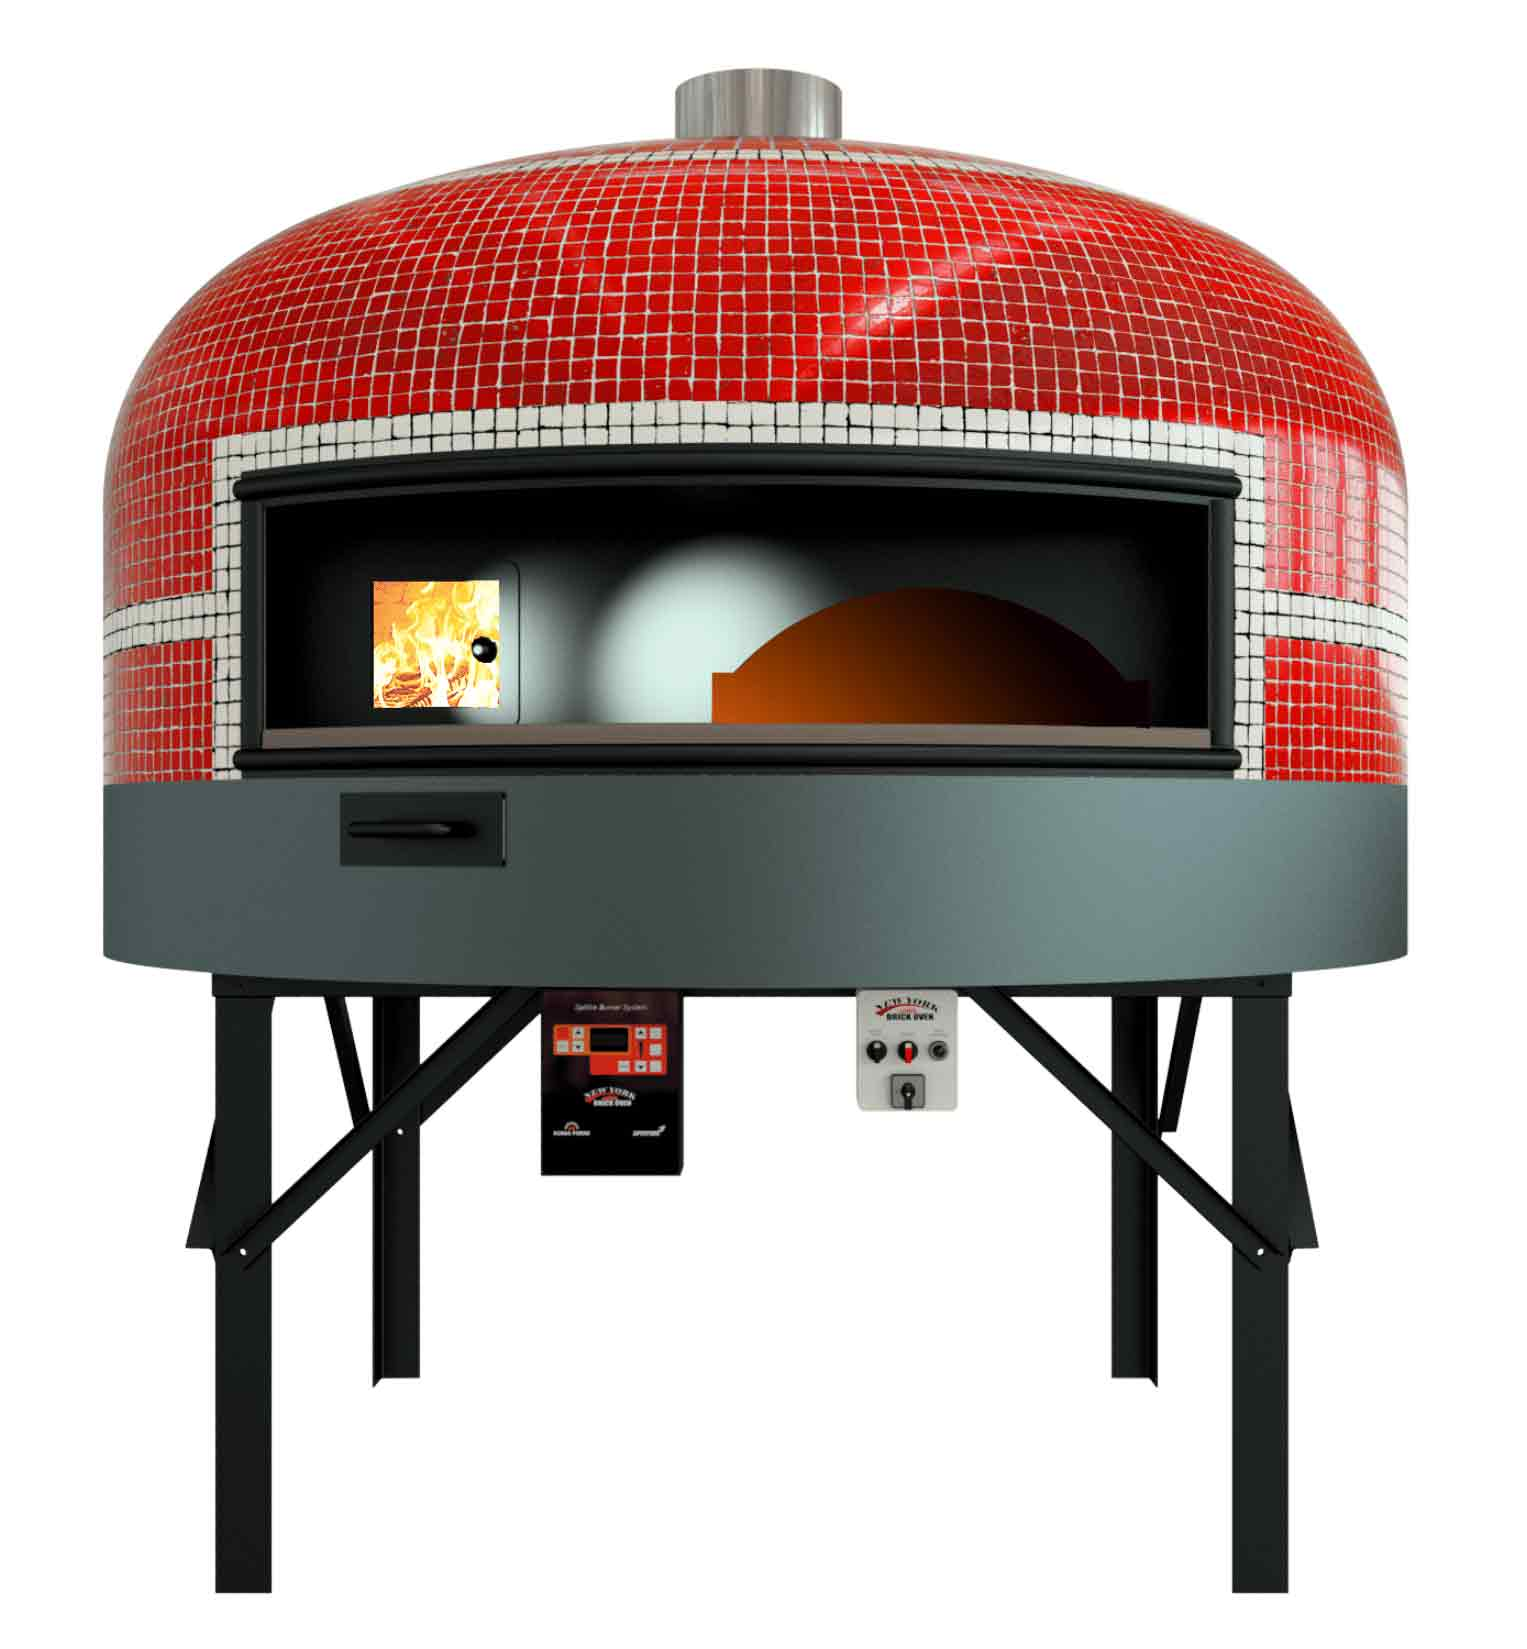 Commercial Pizza Ovens For Sale